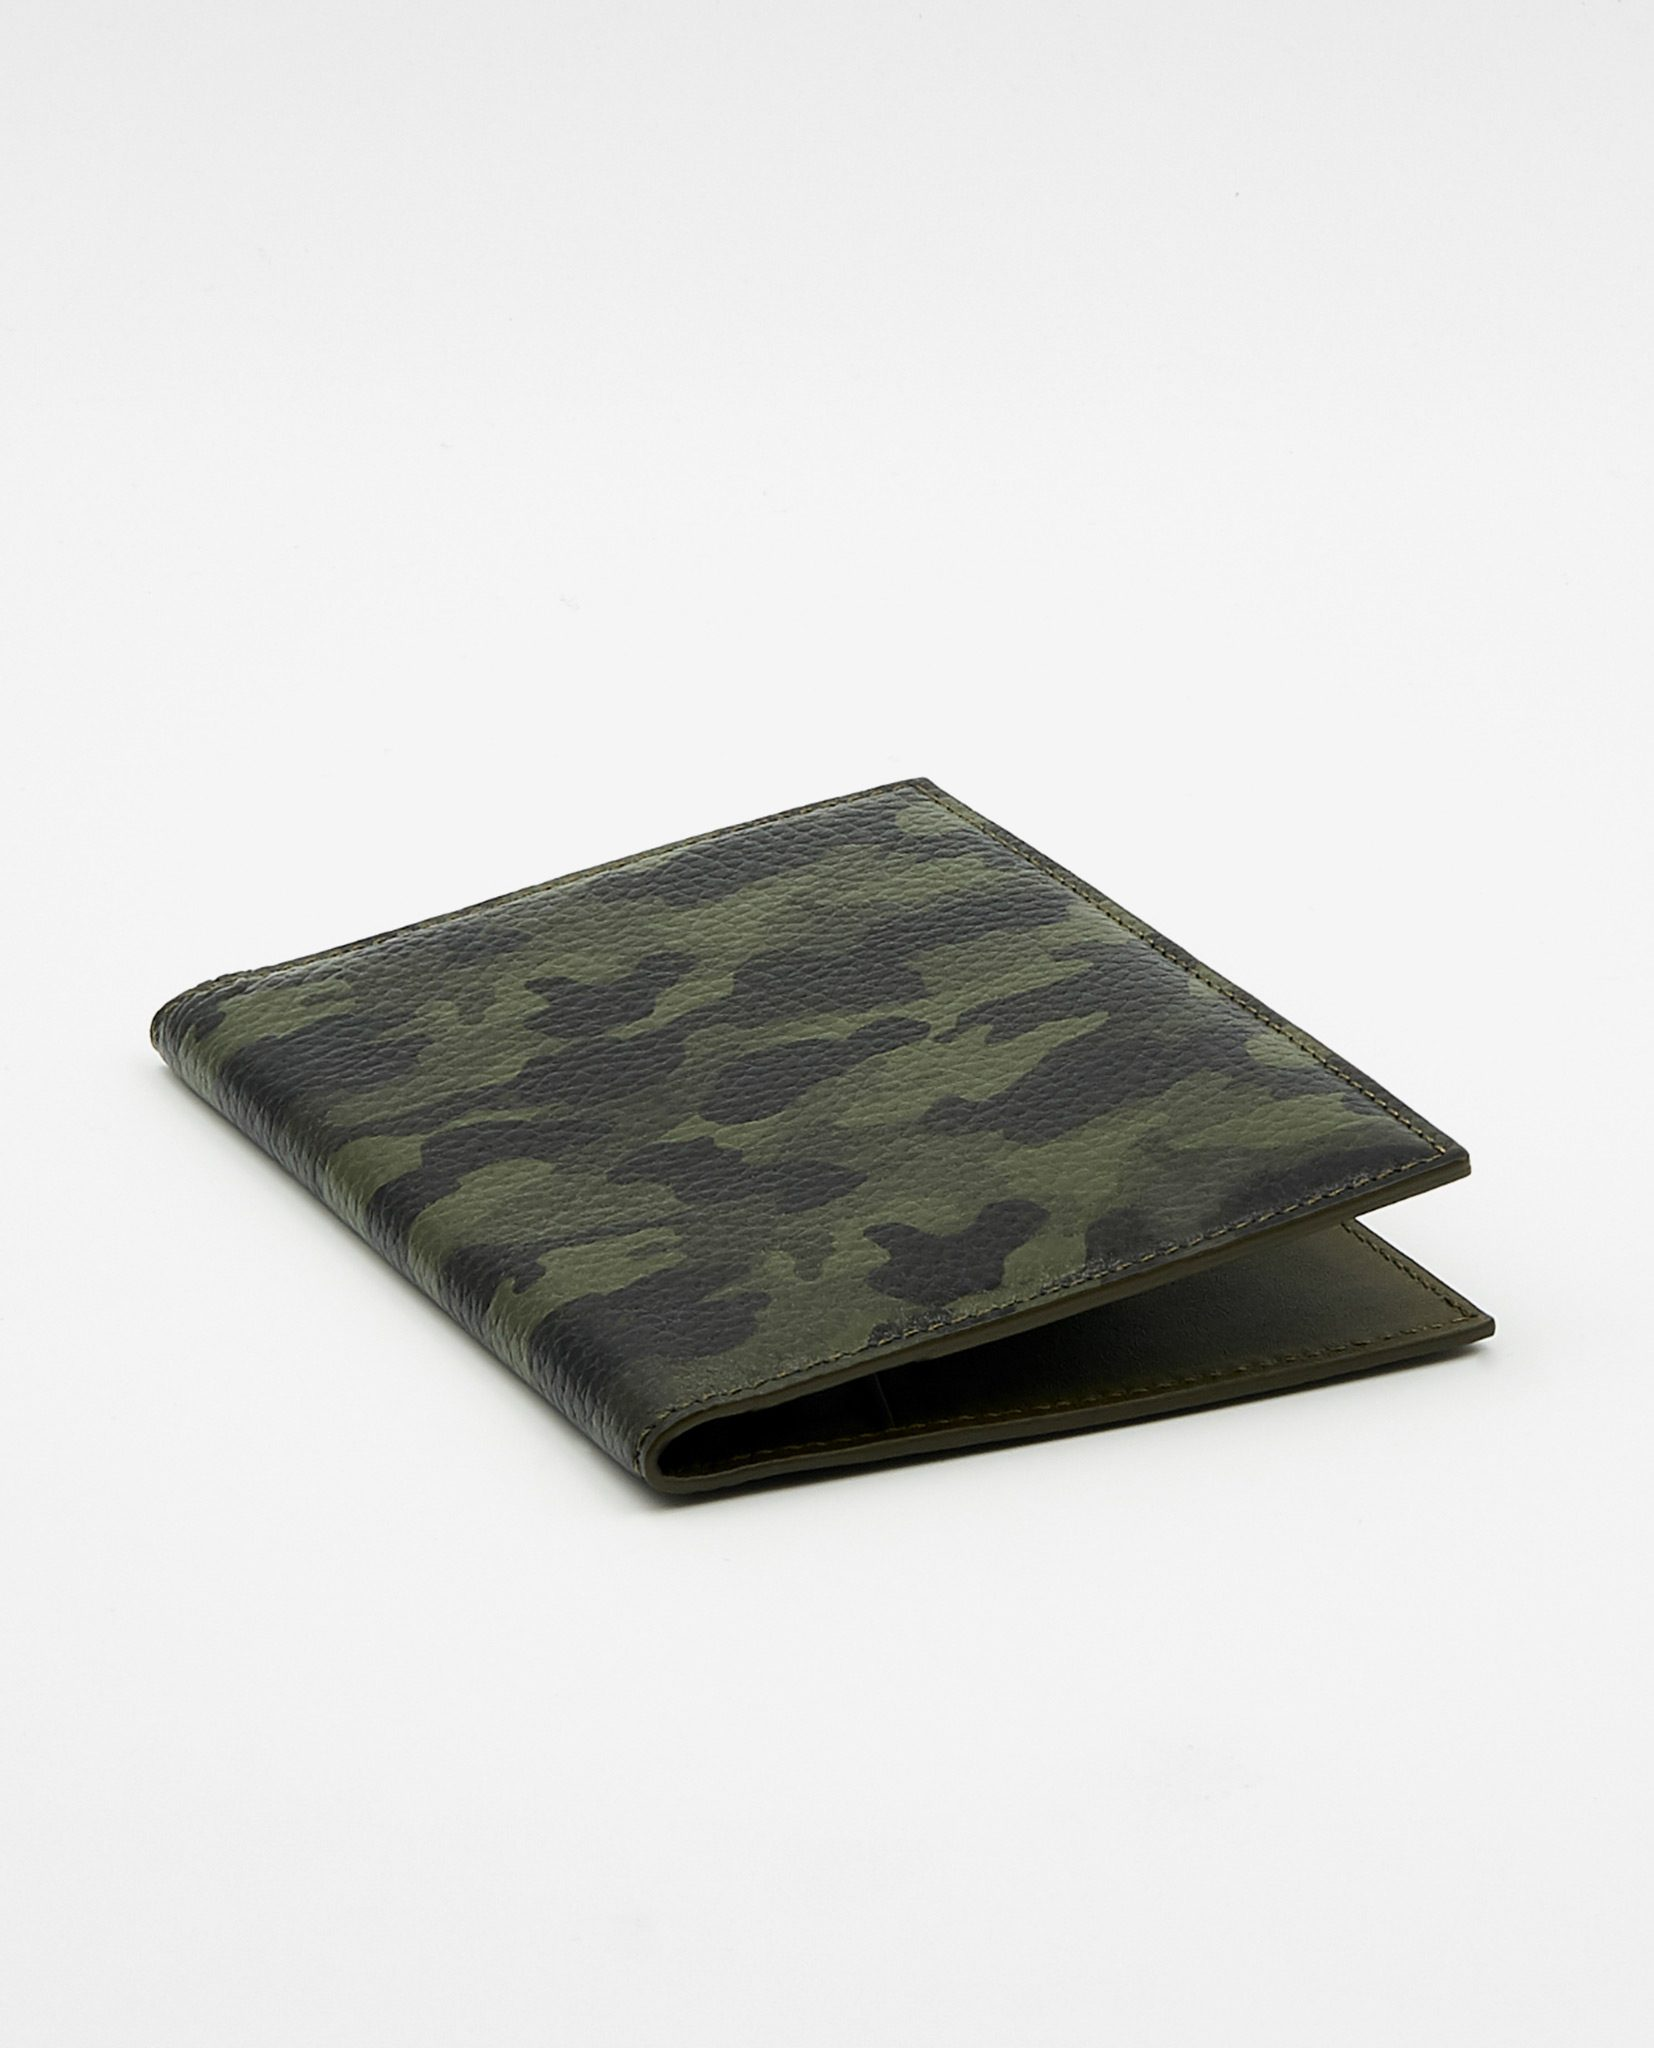 Soofre_Passport-Holder_Camouflage-Khaki-1